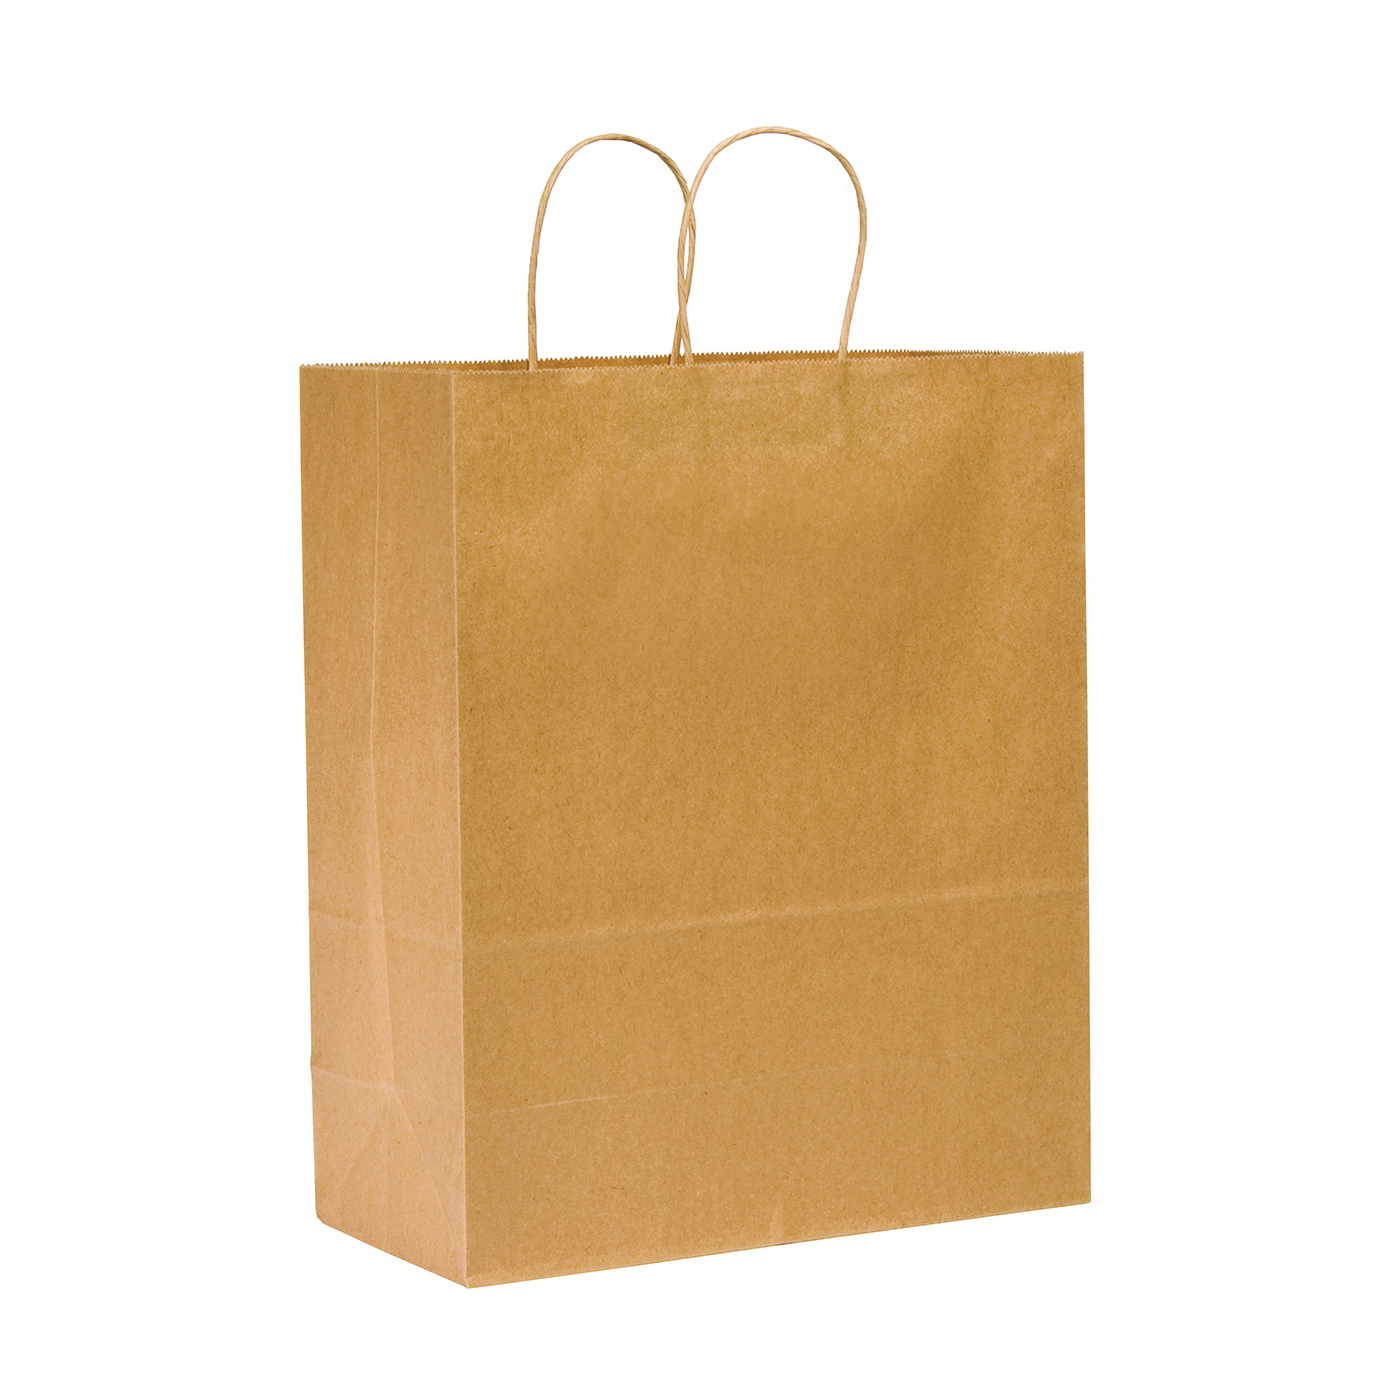 Picture of Duro Bag Dubl Life 87128 Shopping Bag, 65 lb Capacity, Kraft Paper, Brown, 250, Pack